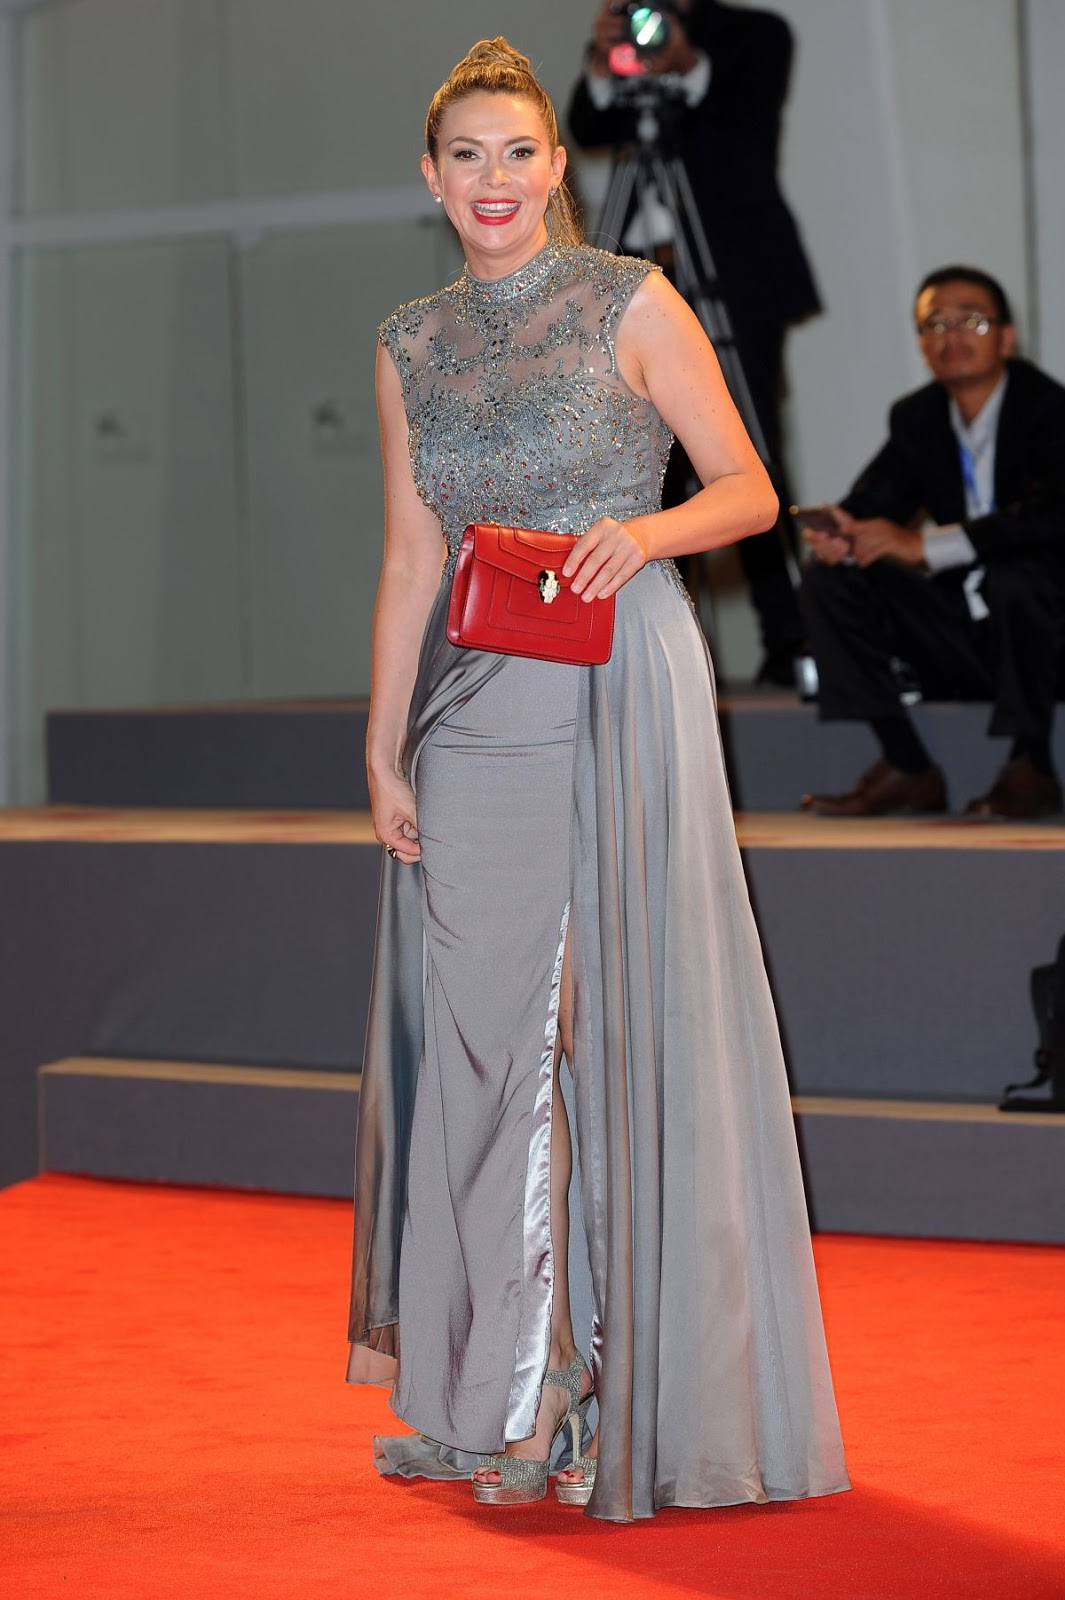 Full HQ Photos of Carly Steel grey Dress At Arrival Premiere At 2016 Venice Film Festival